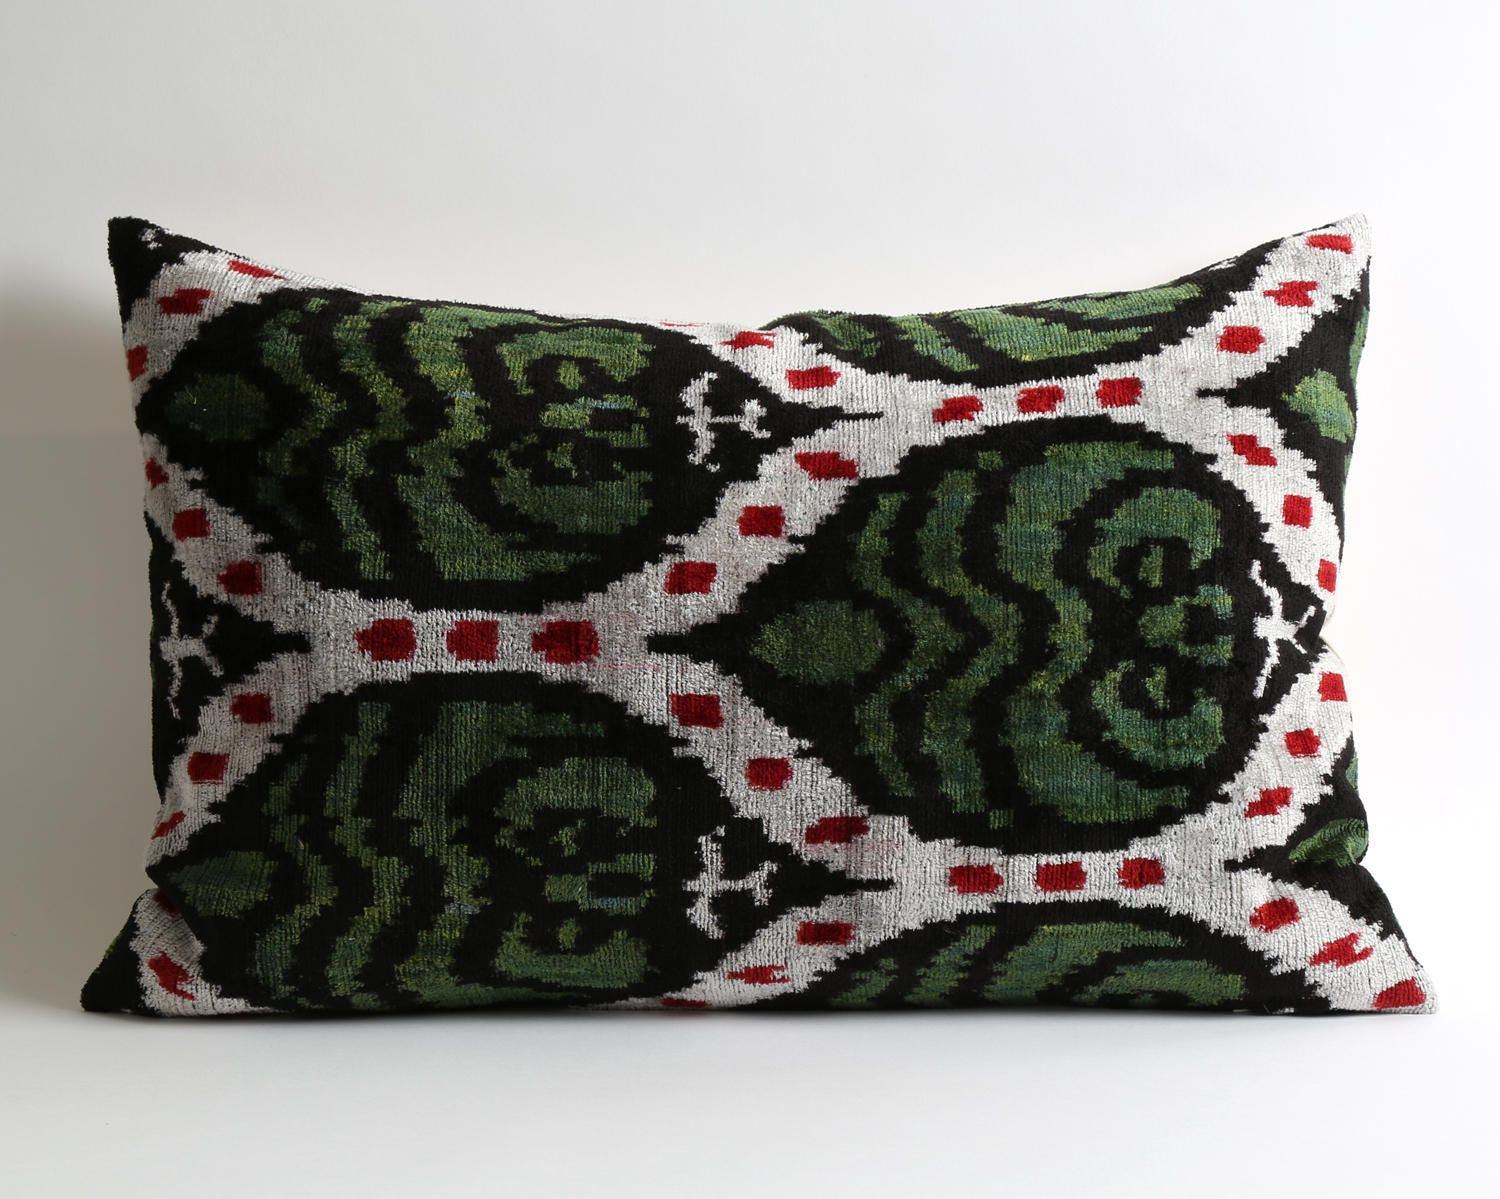 Green velvet pillow cover decorative